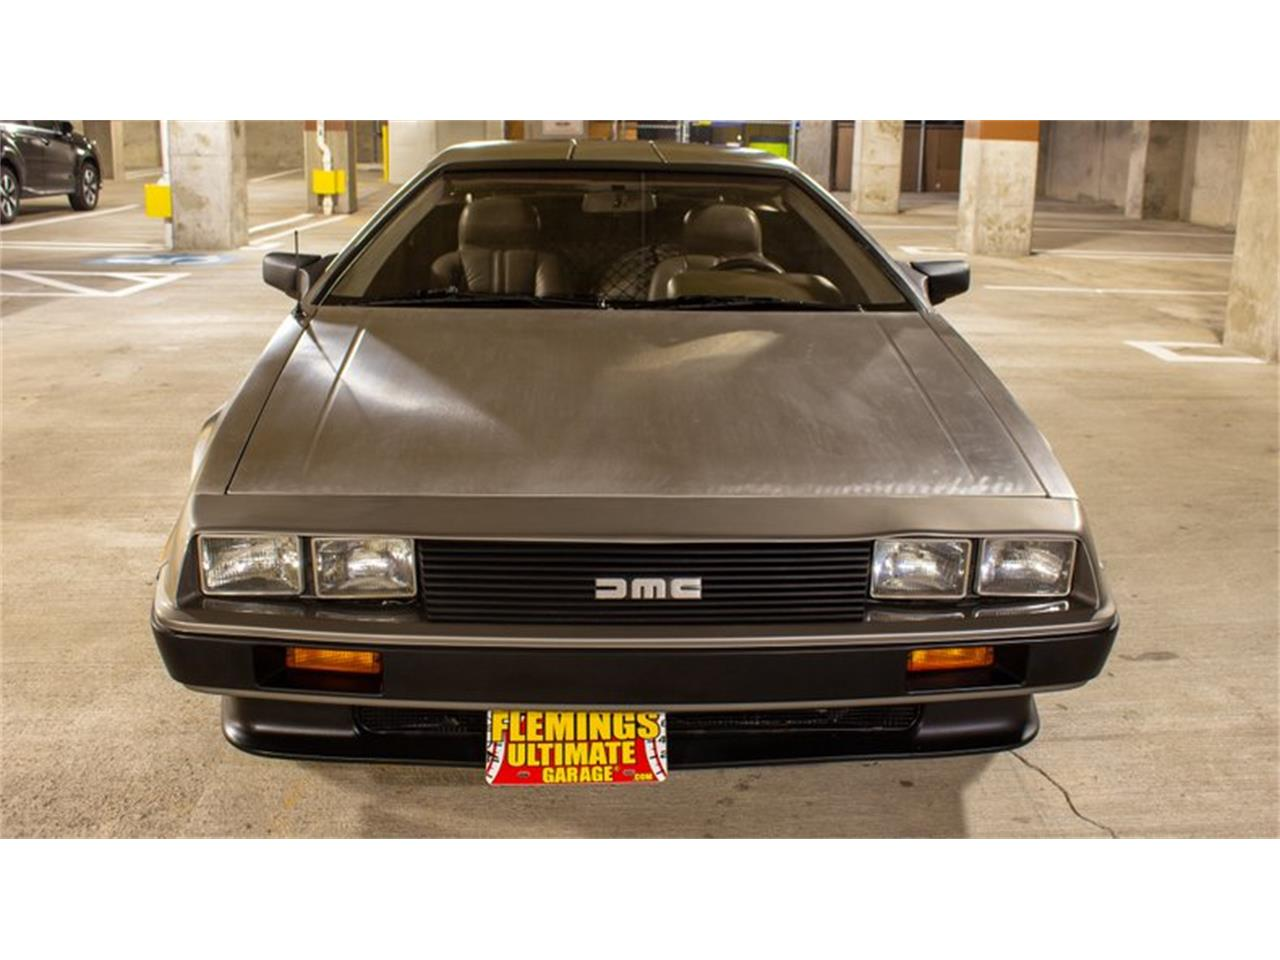 Large Picture of 1981 DMC-12 located in Rockville Maryland Offered by Flemings Ultimate Garage - QZ9U